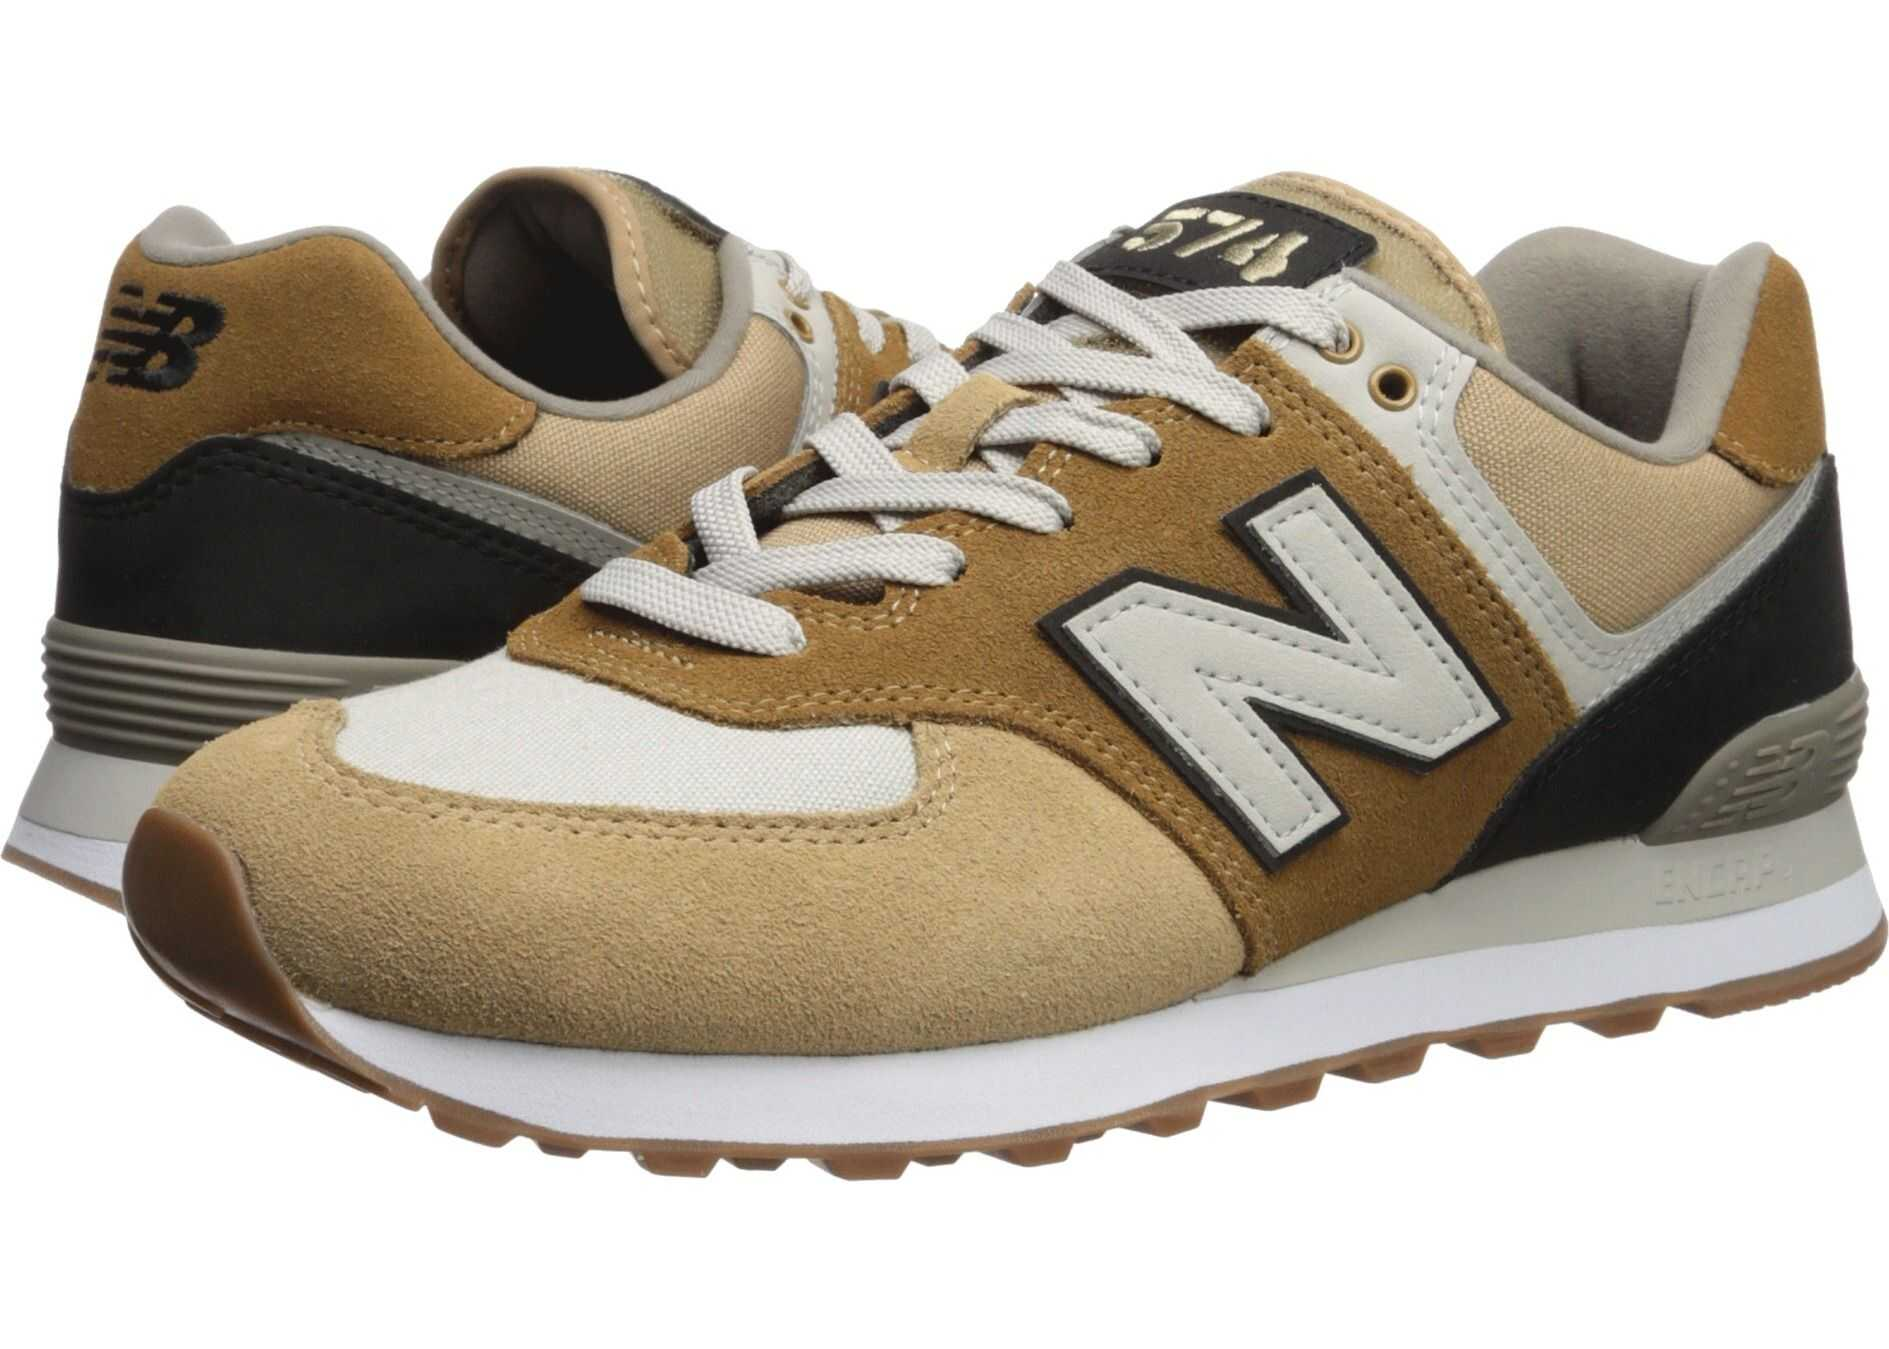 New Balance Classics 574v2-USA Hemp/Black